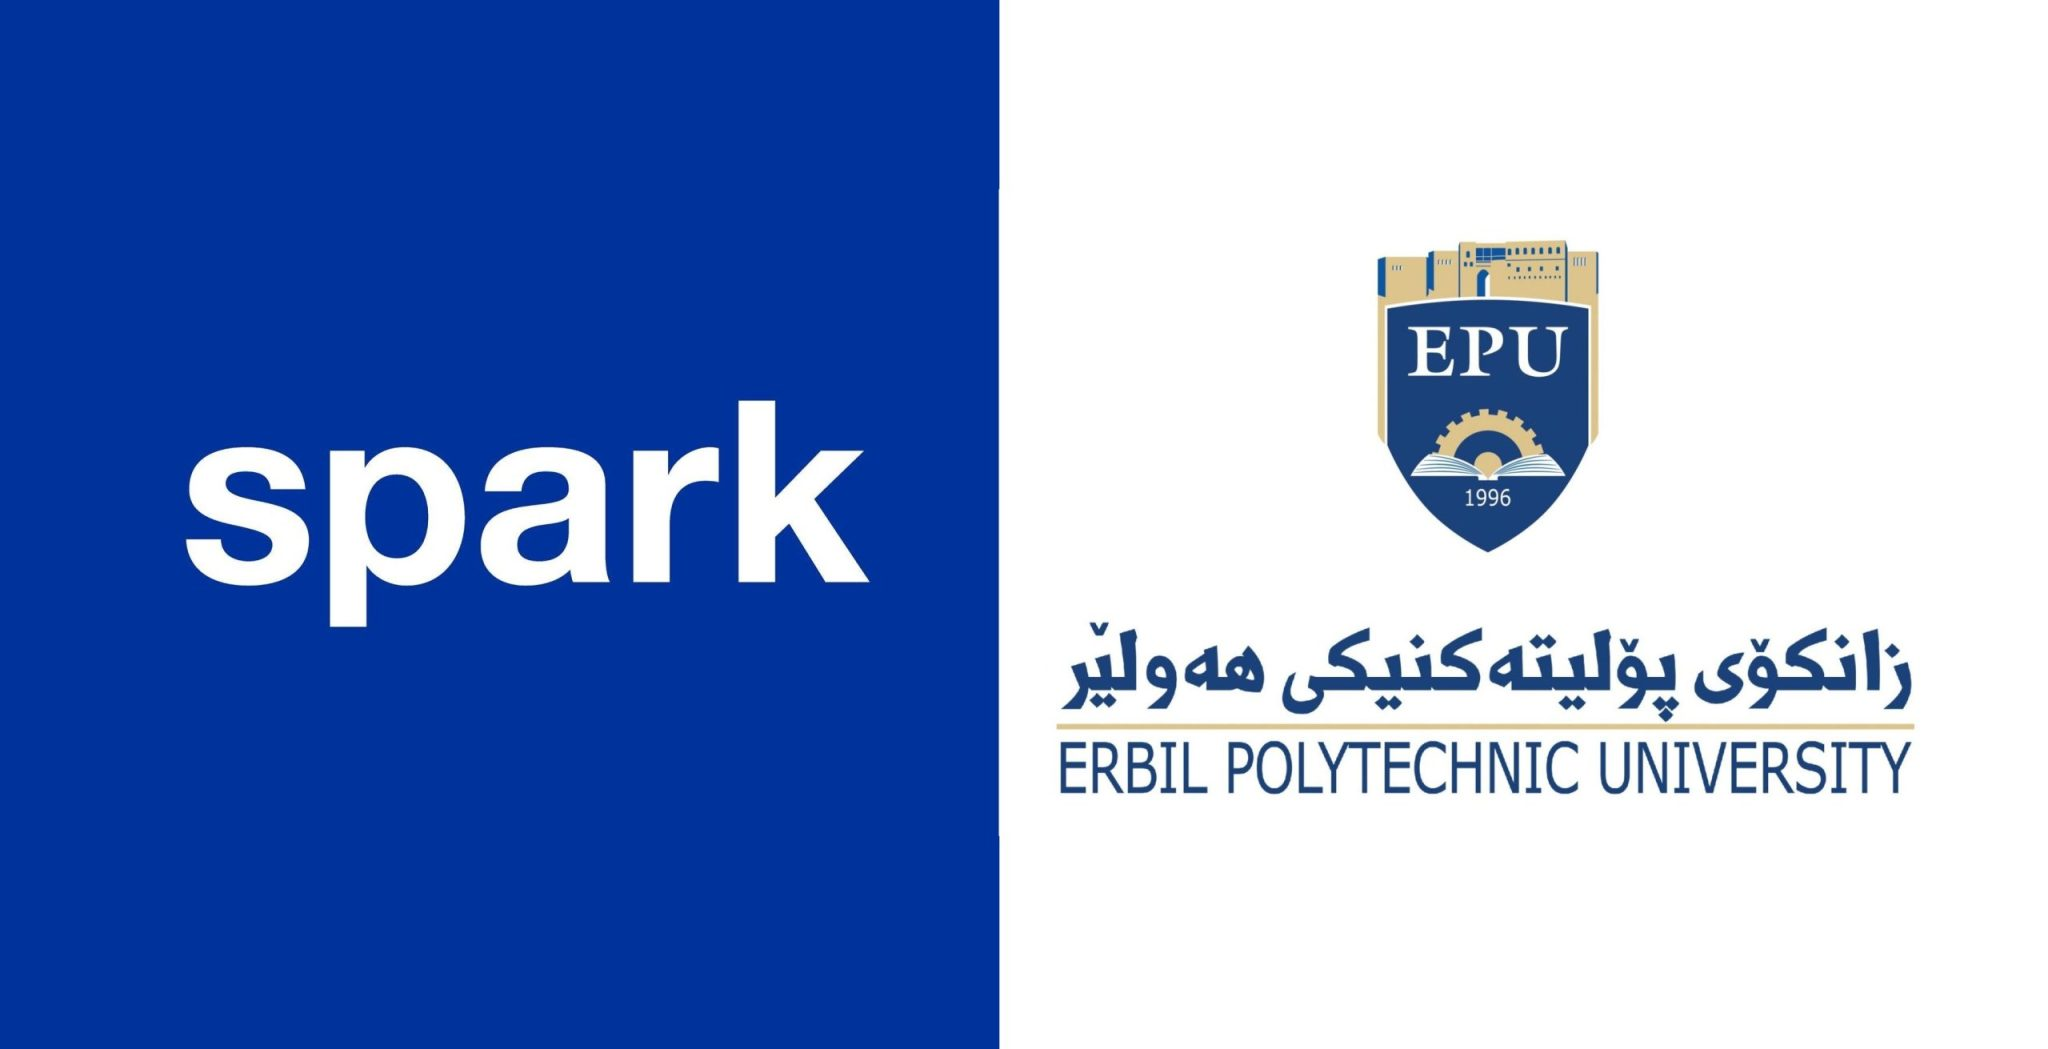 Erbil Polytechnic University In Collaboration With SPARK International Organization Open A Training Course For EPU Alumni